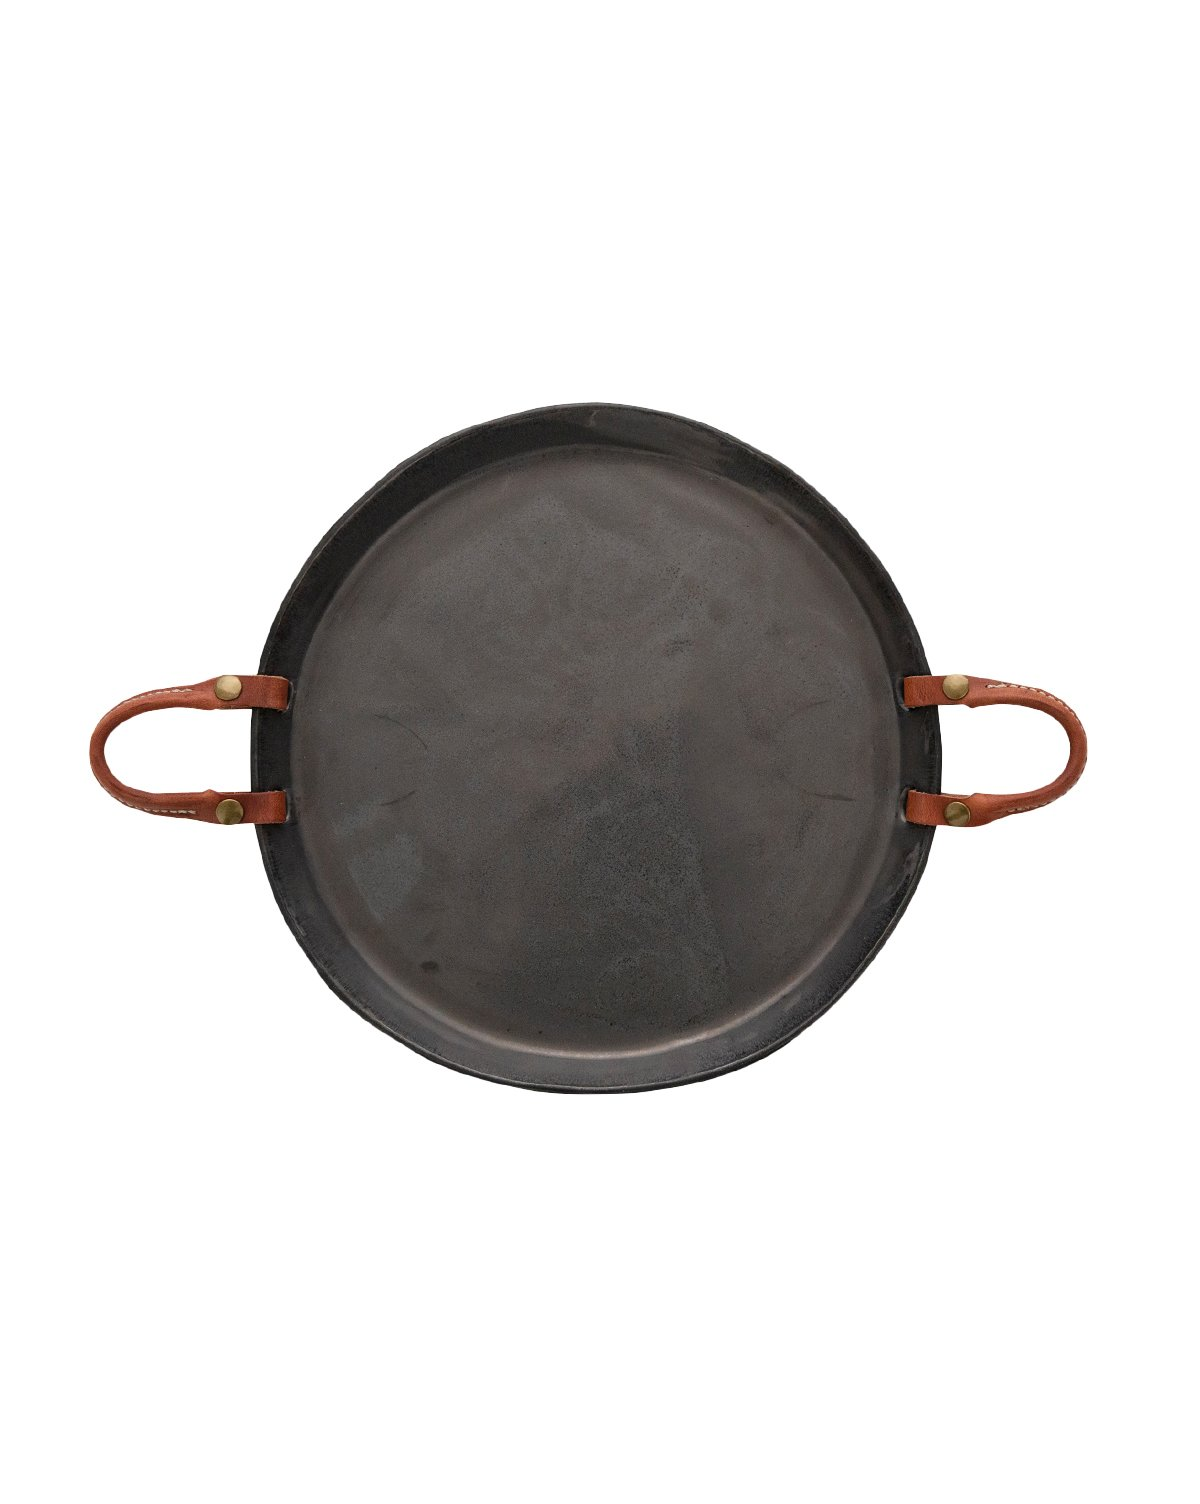 leather_handled_tray4.jpg